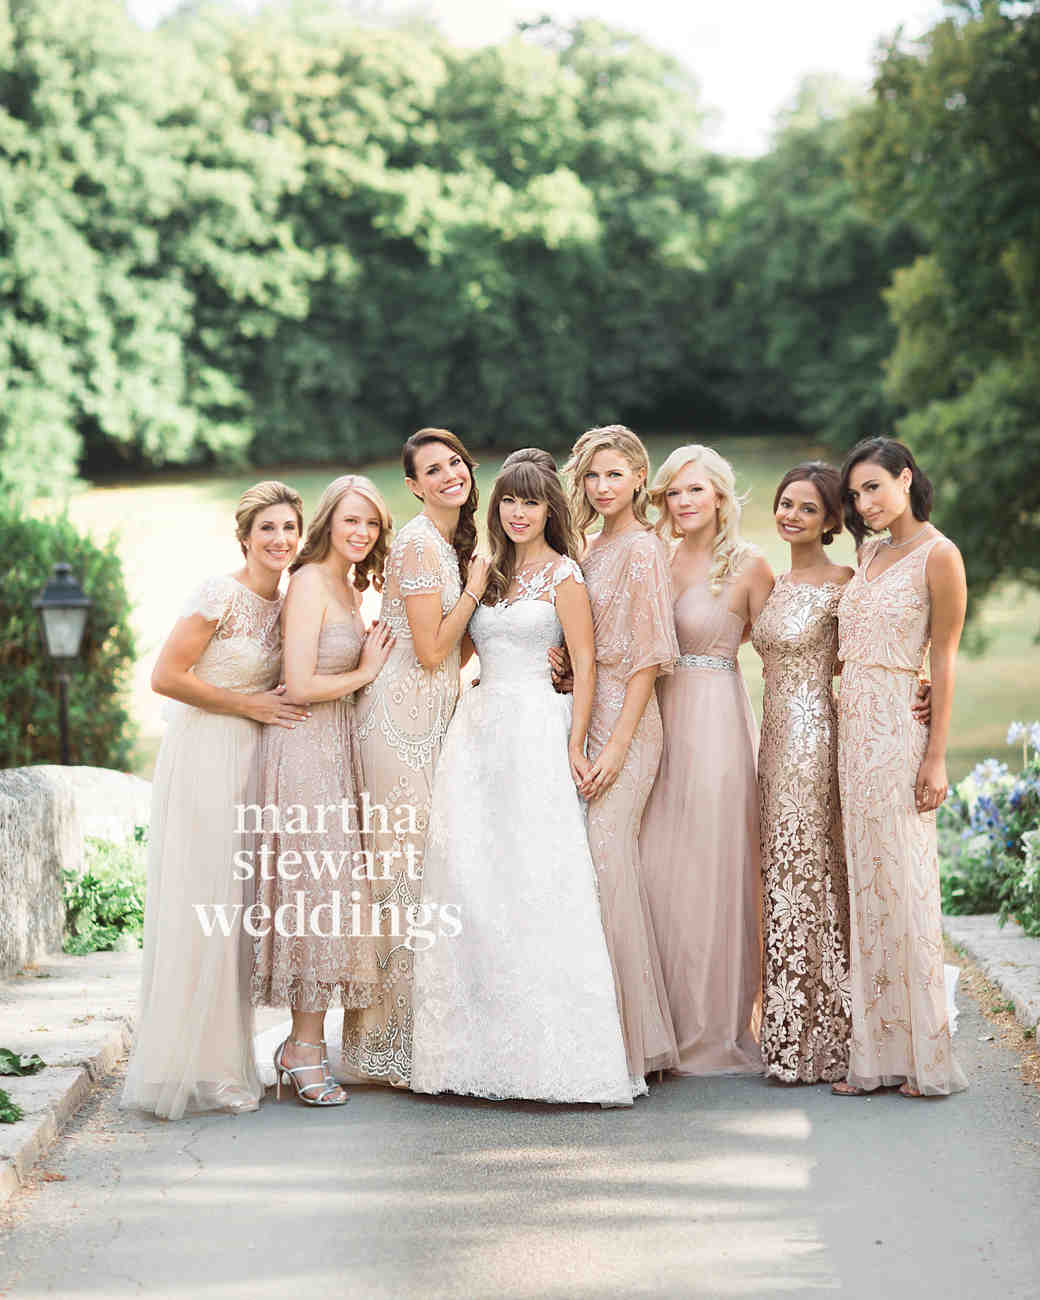 41 Reasons to Love the Mismatched Bridesmaids Look | Martha ...